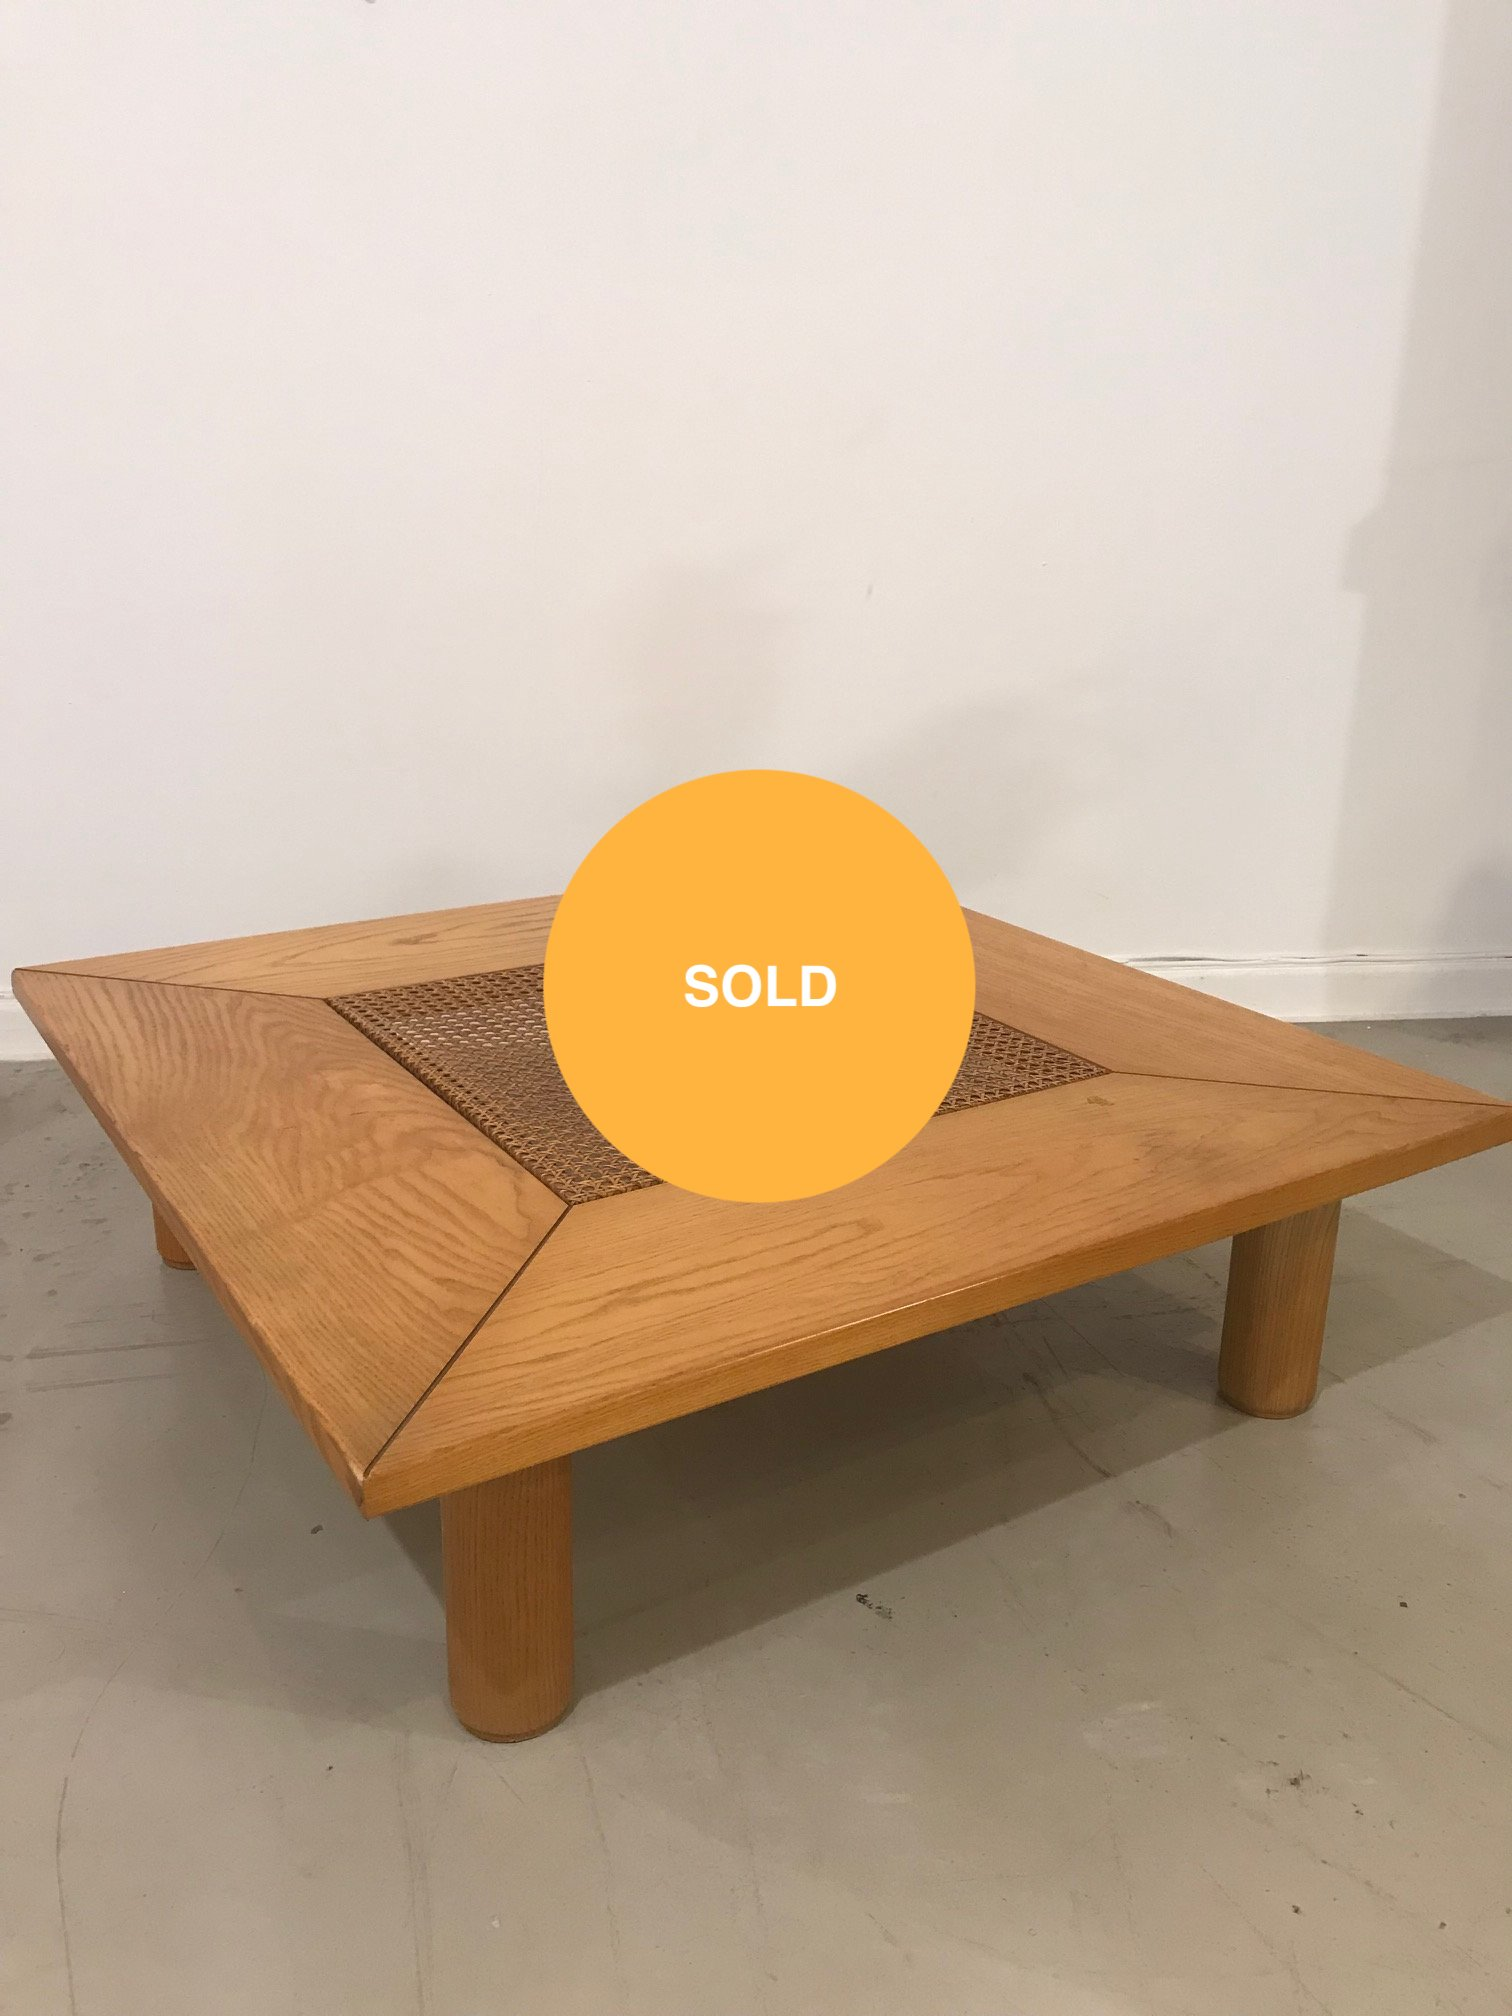 Square shaped wood coffee table